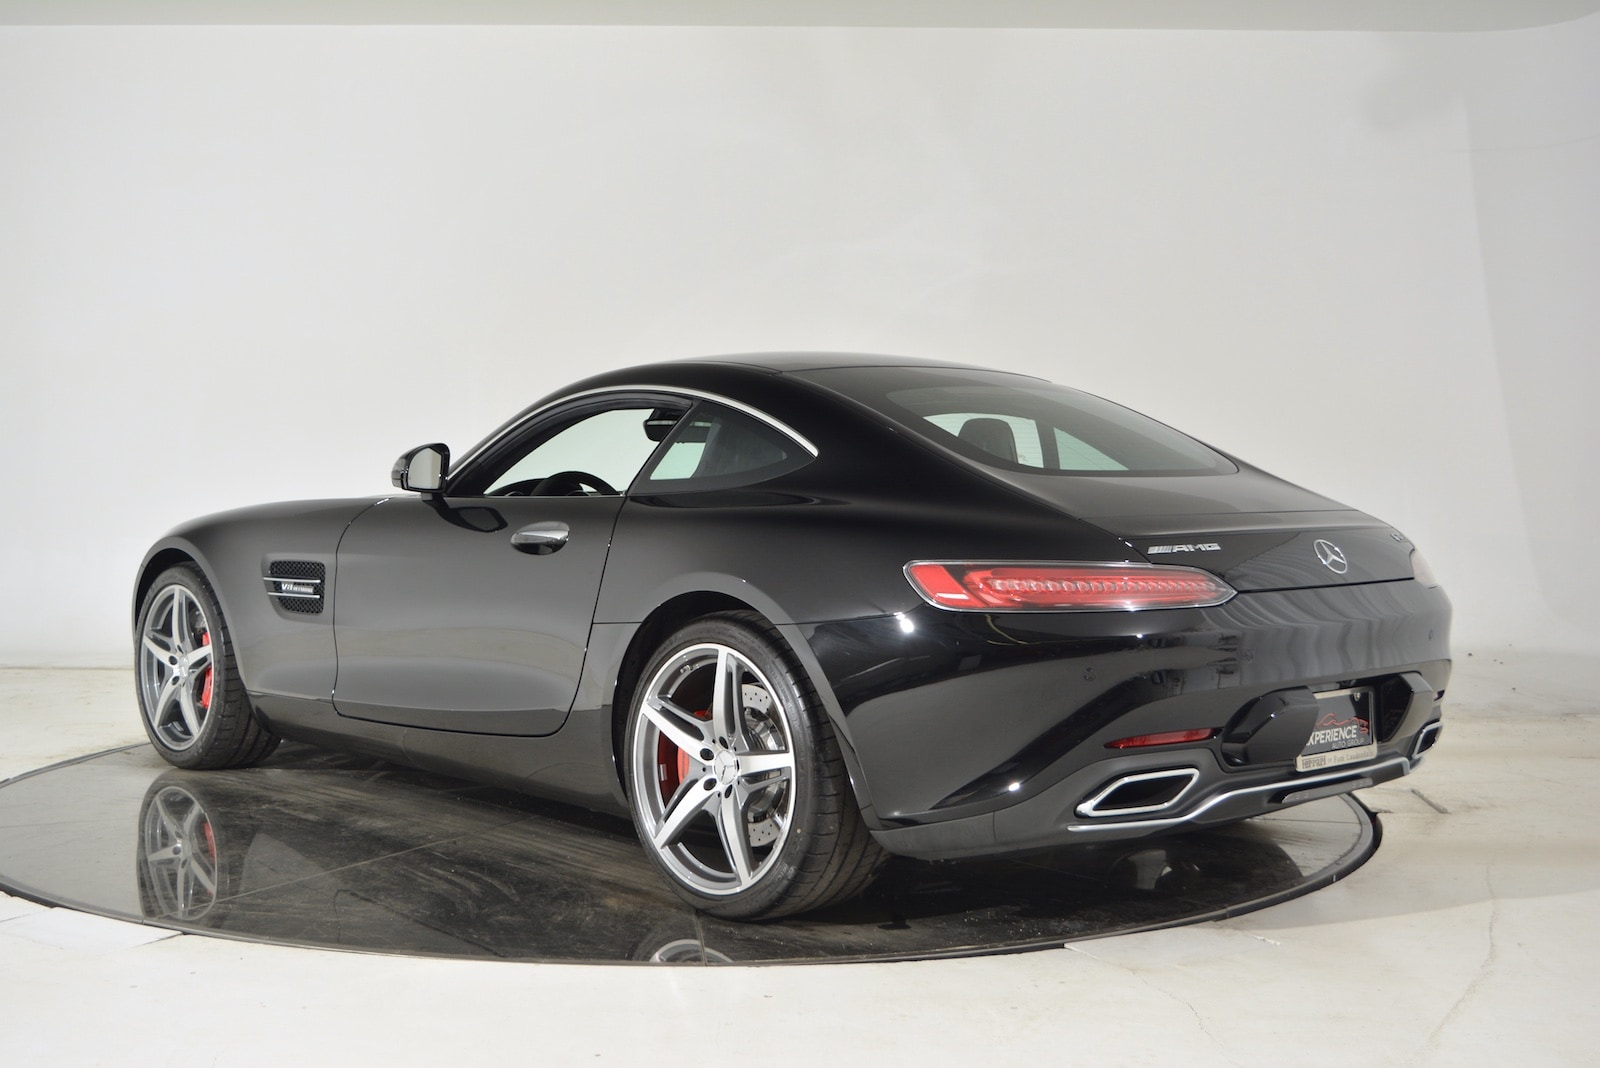 2016 mercedes benz amg gt s coupe for sale in fort lauderdale fl at. Cars Review. Best American Auto & Cars Review